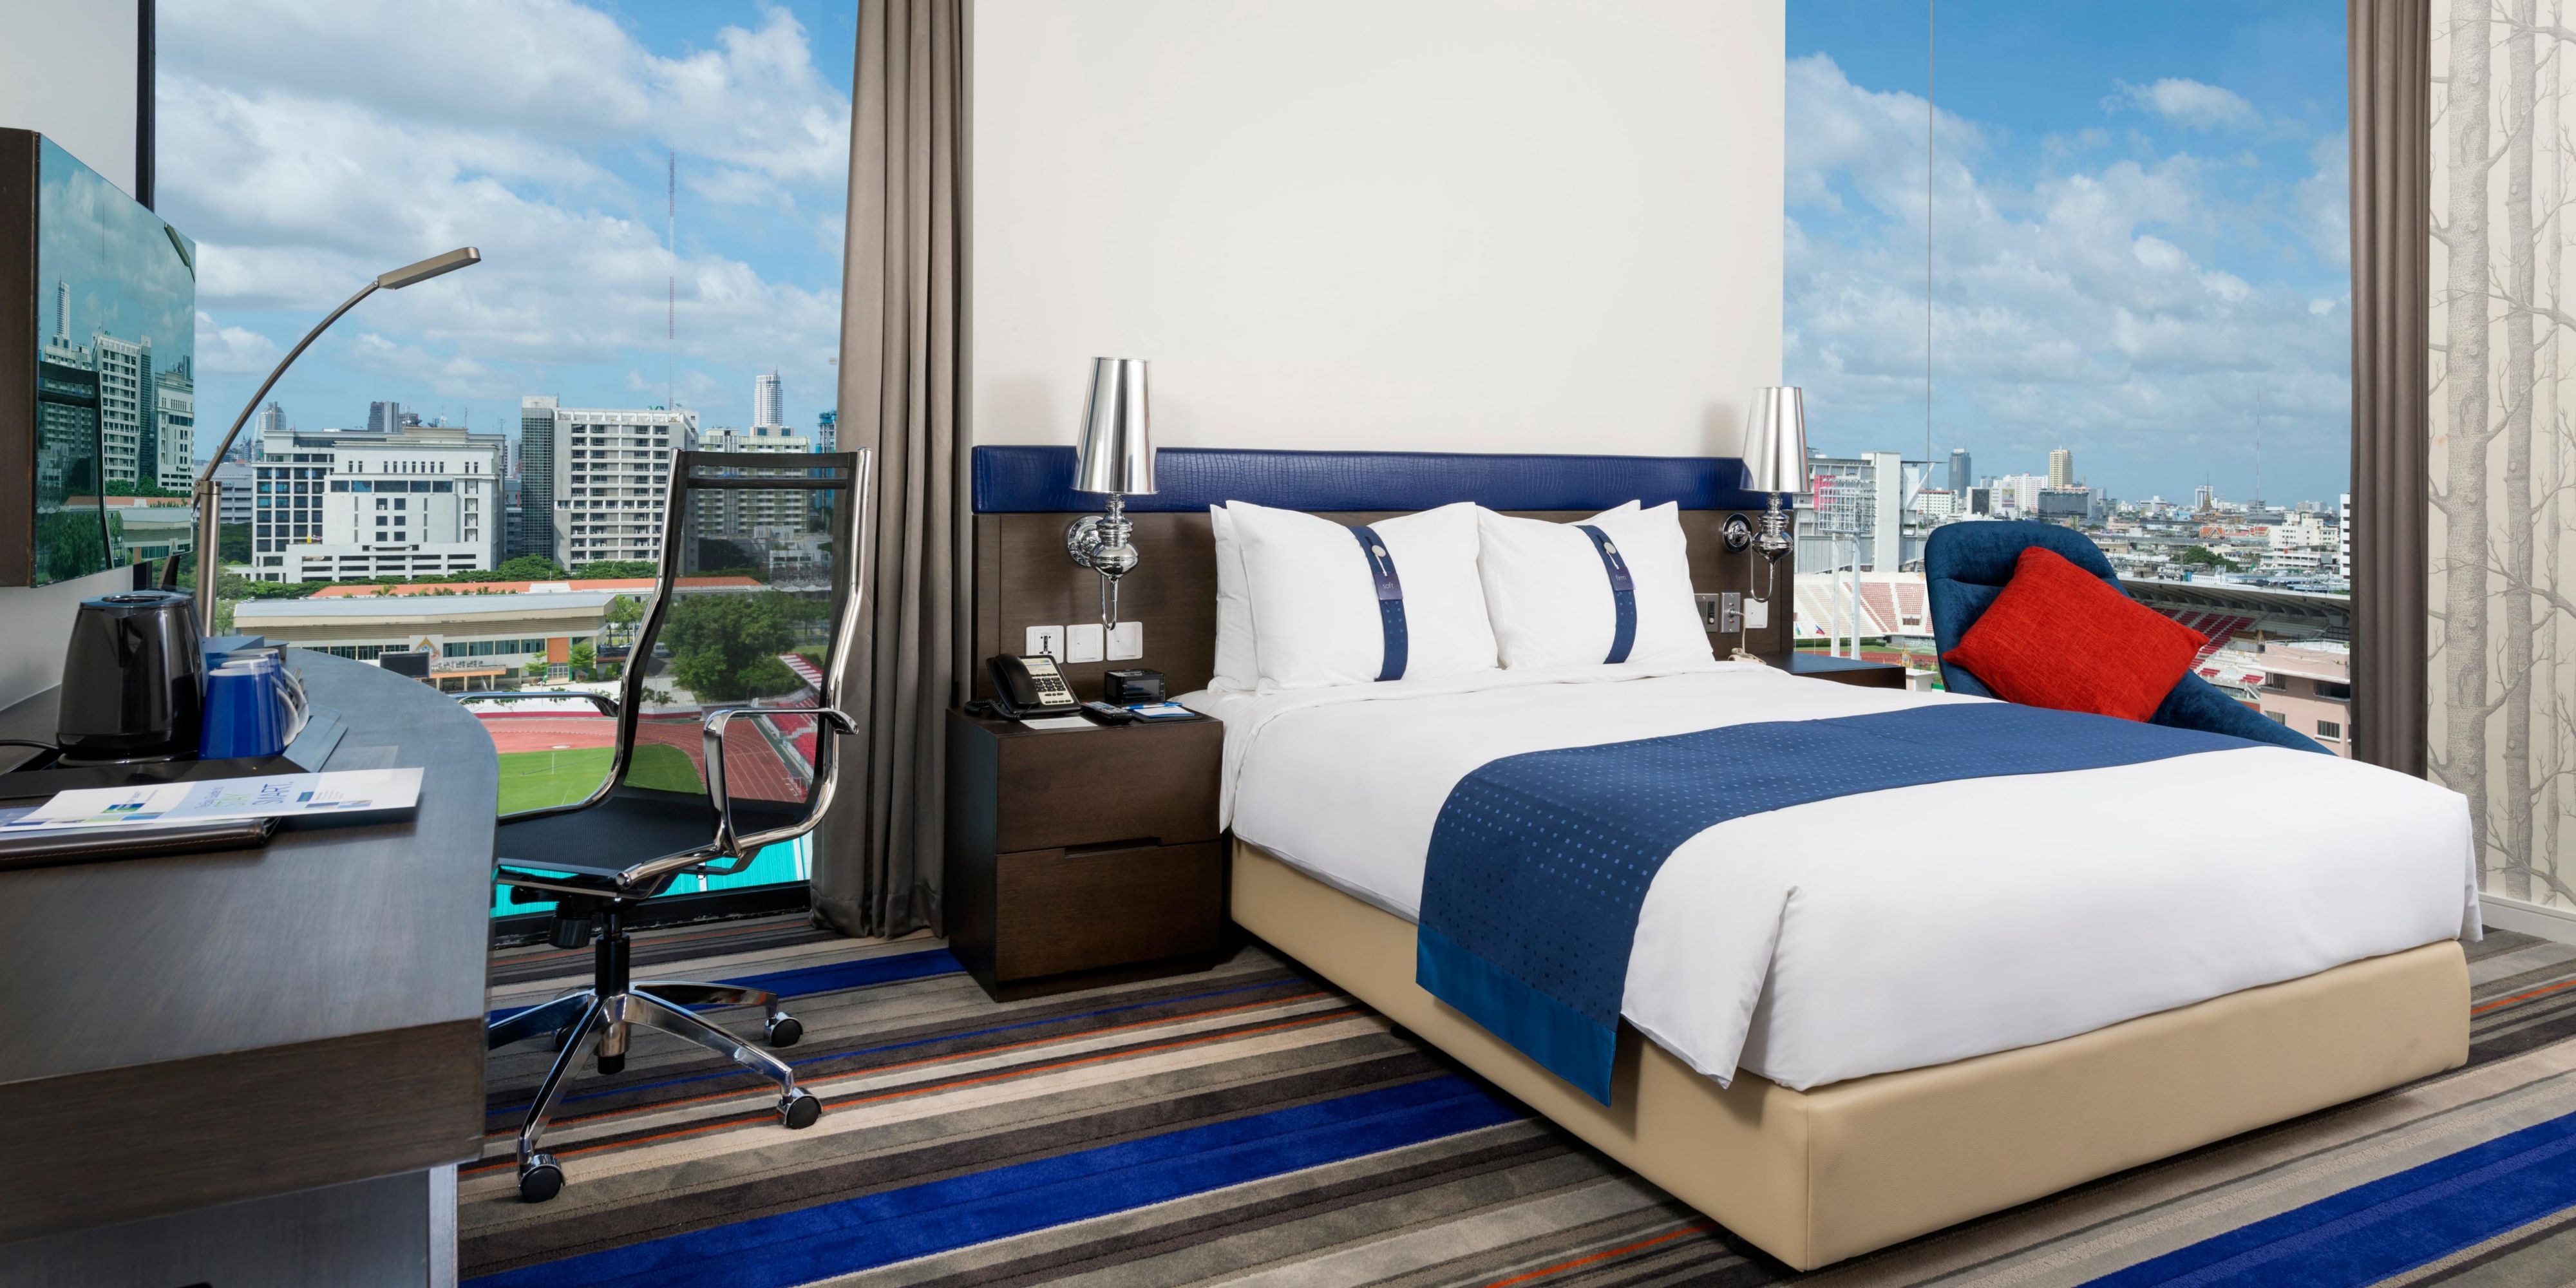 holiday-inn-express-bangkok-2532999032-2x1